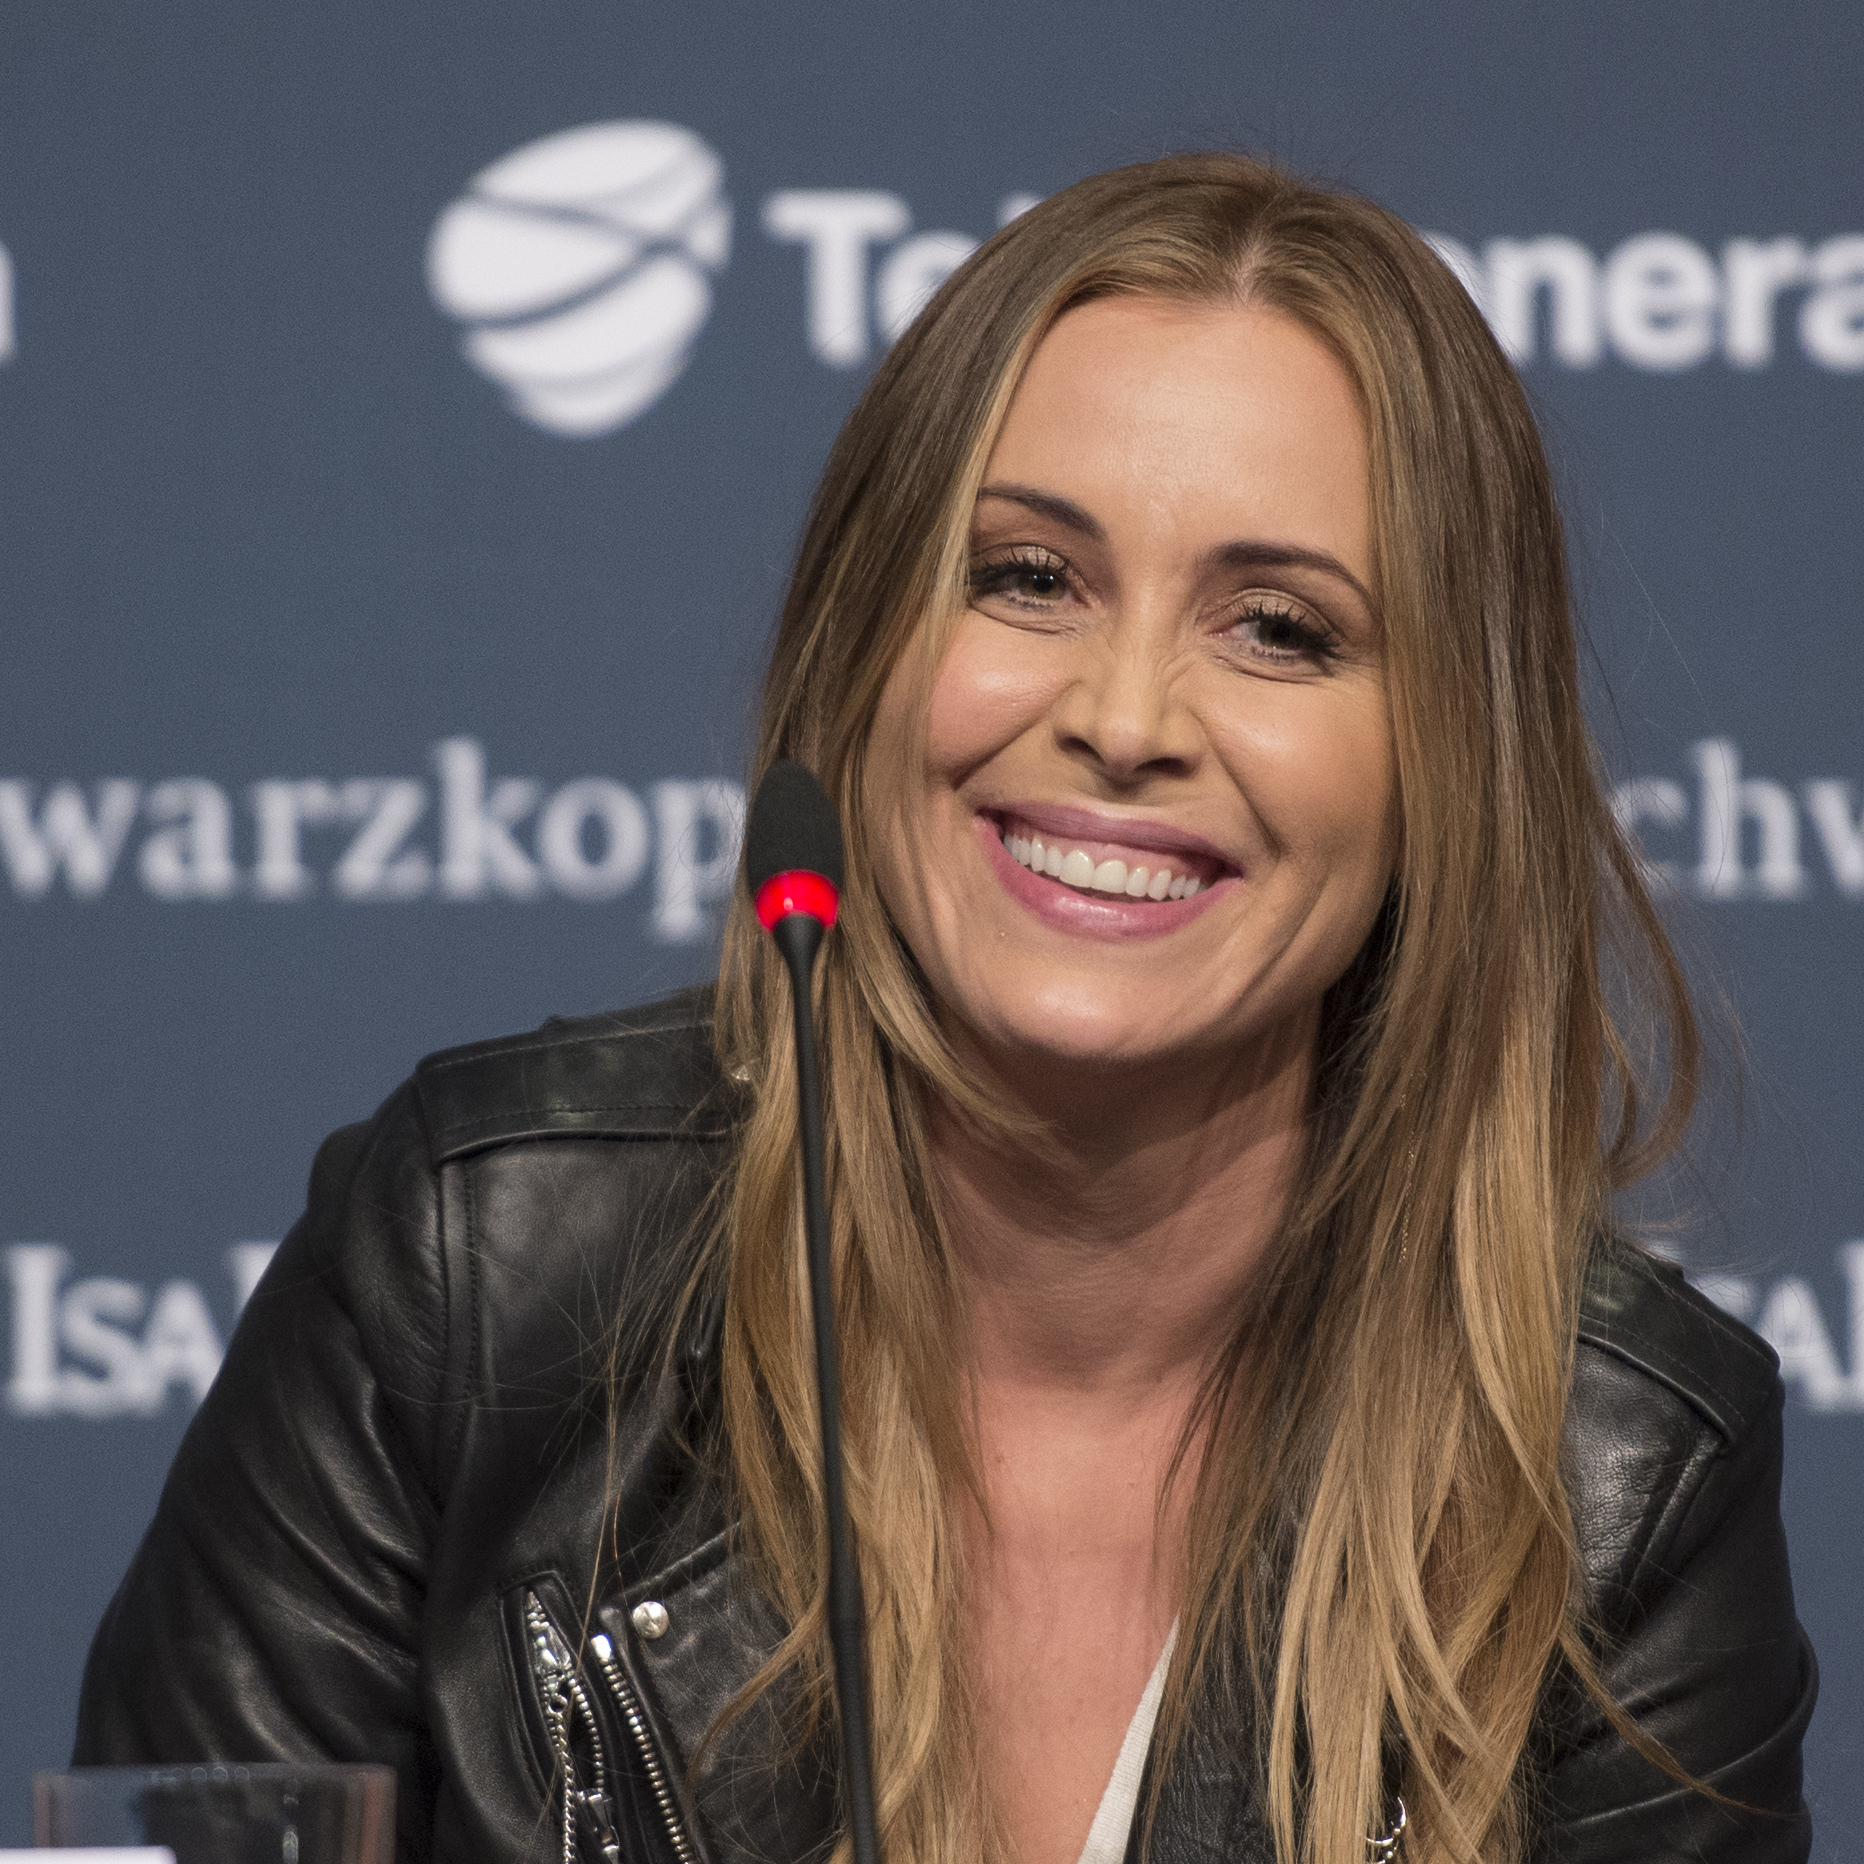 The 43-year old daughter of father (?) and mother(?) Anouk in 2018 photo. Anouk earned a  million dollar salary - leaving the net worth at 4 million in 2018